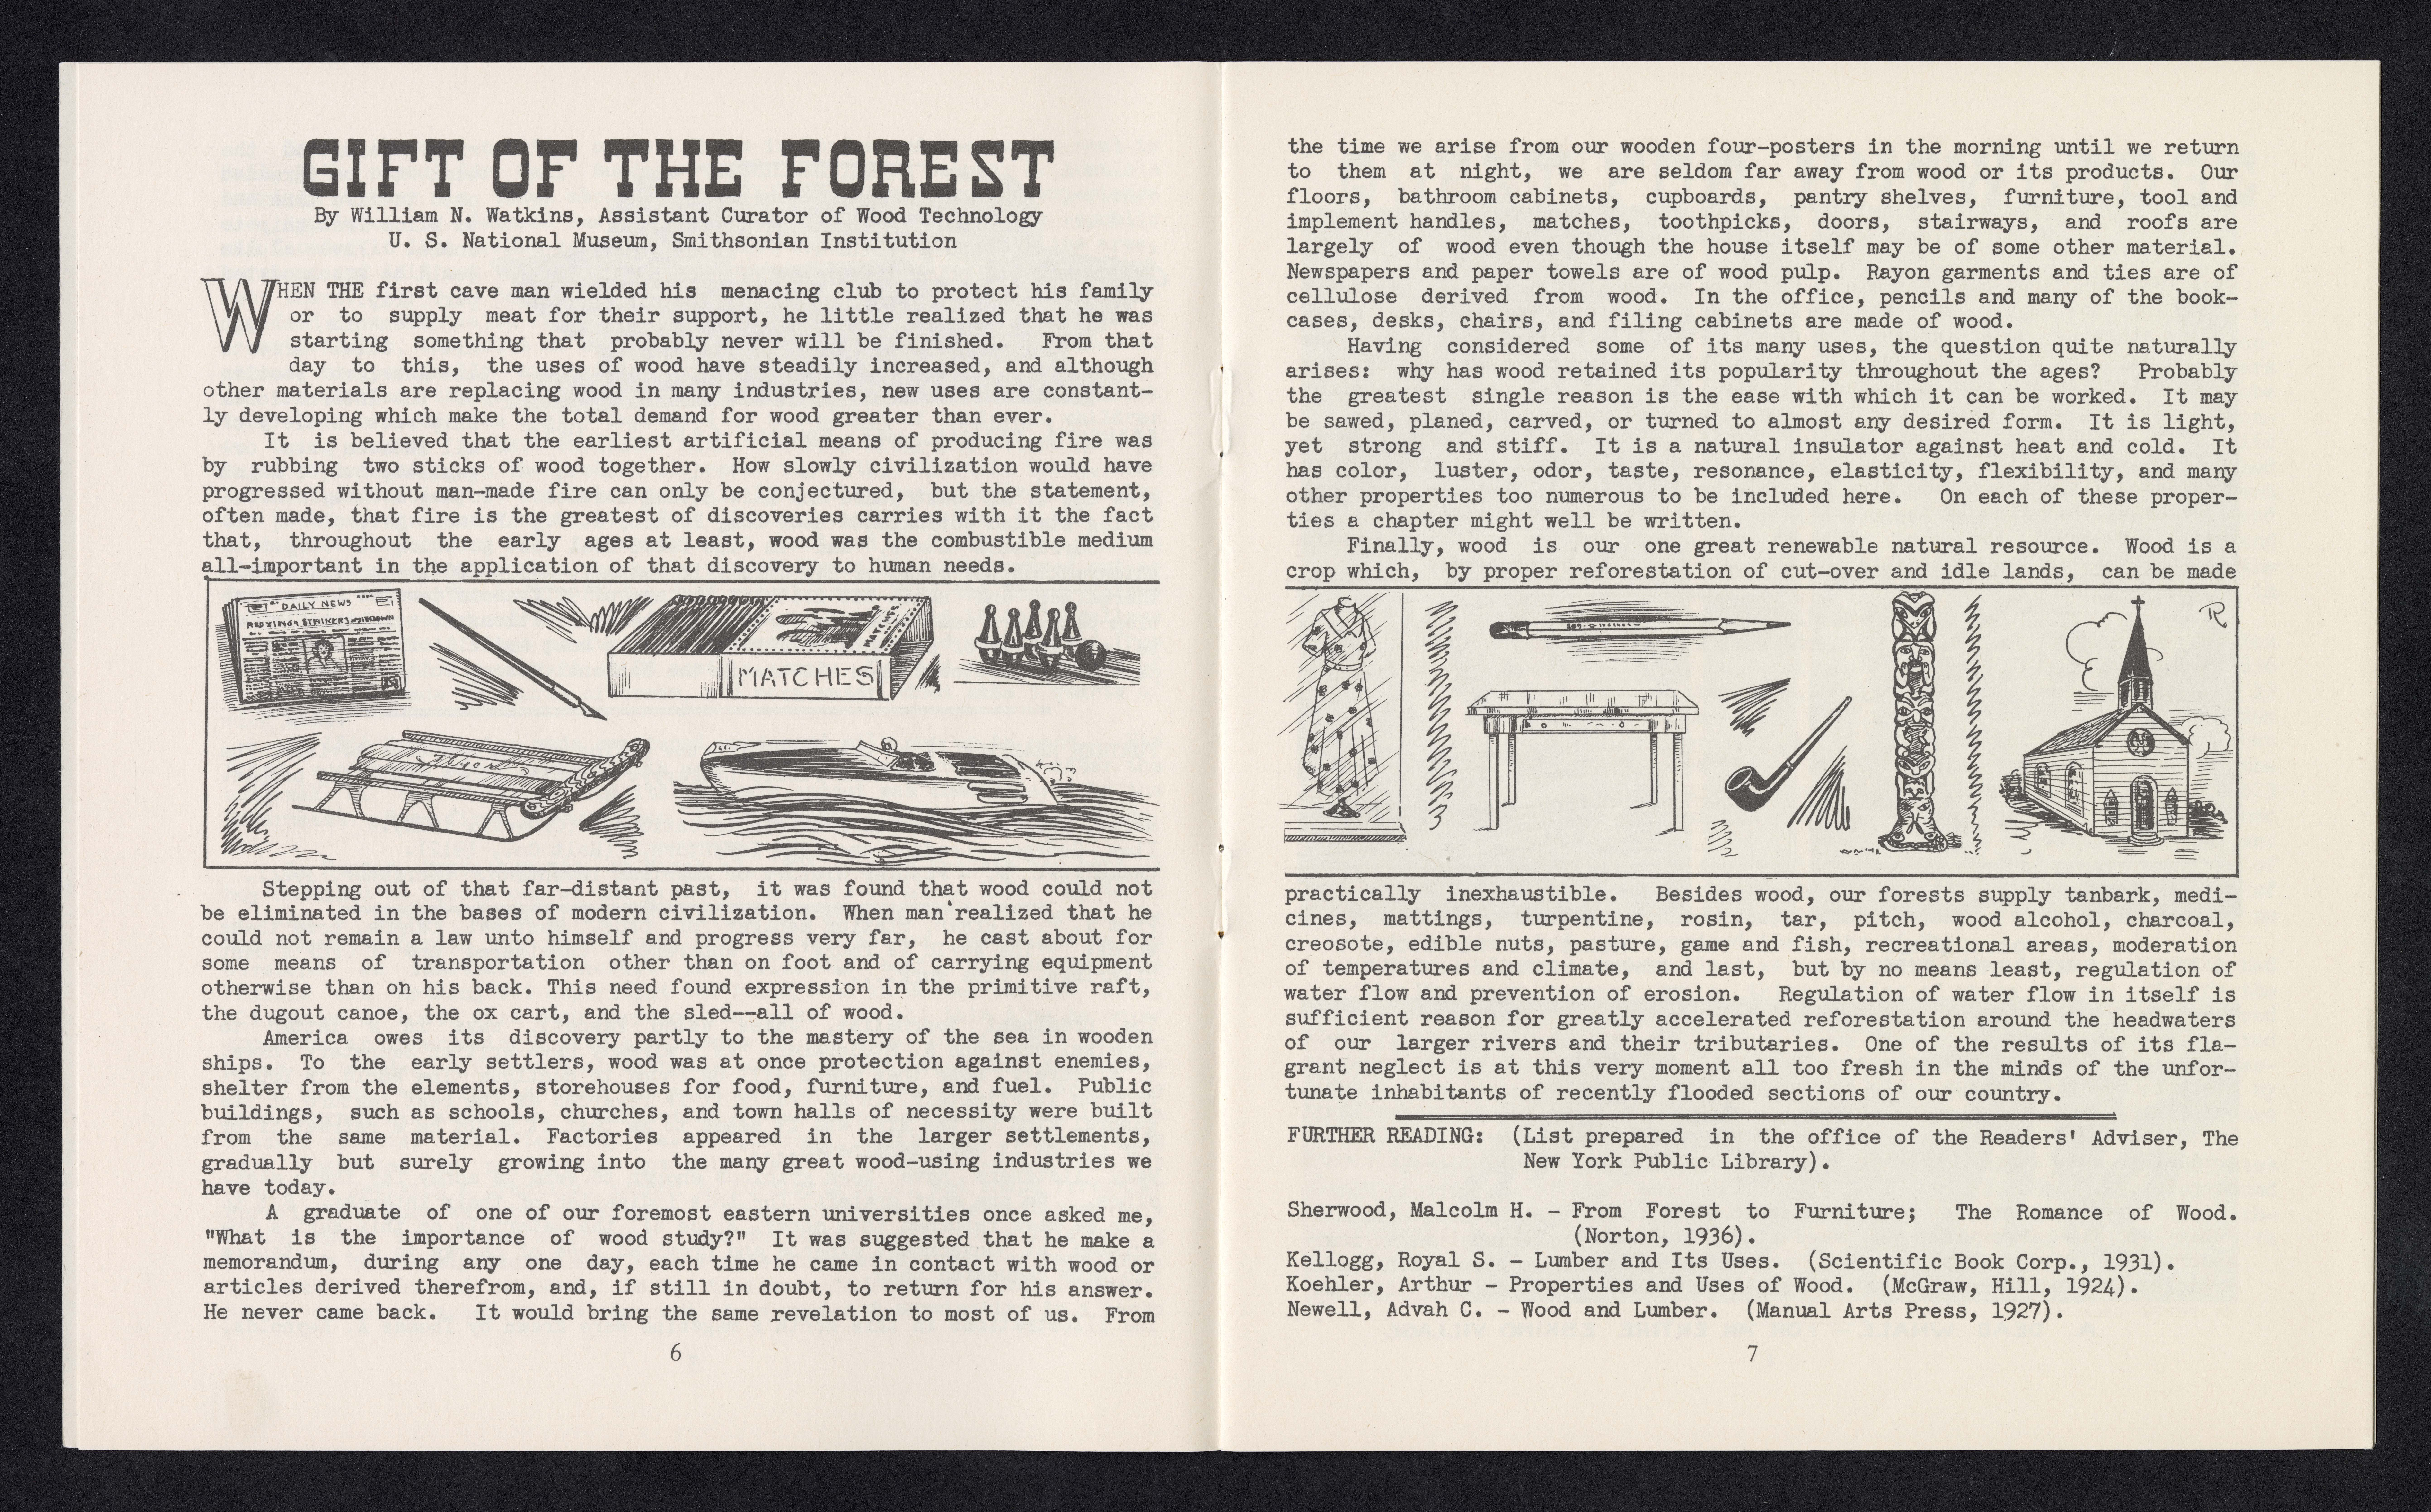 """Pages 6 and 7 are about the topic """"Gift of the Forest."""""""